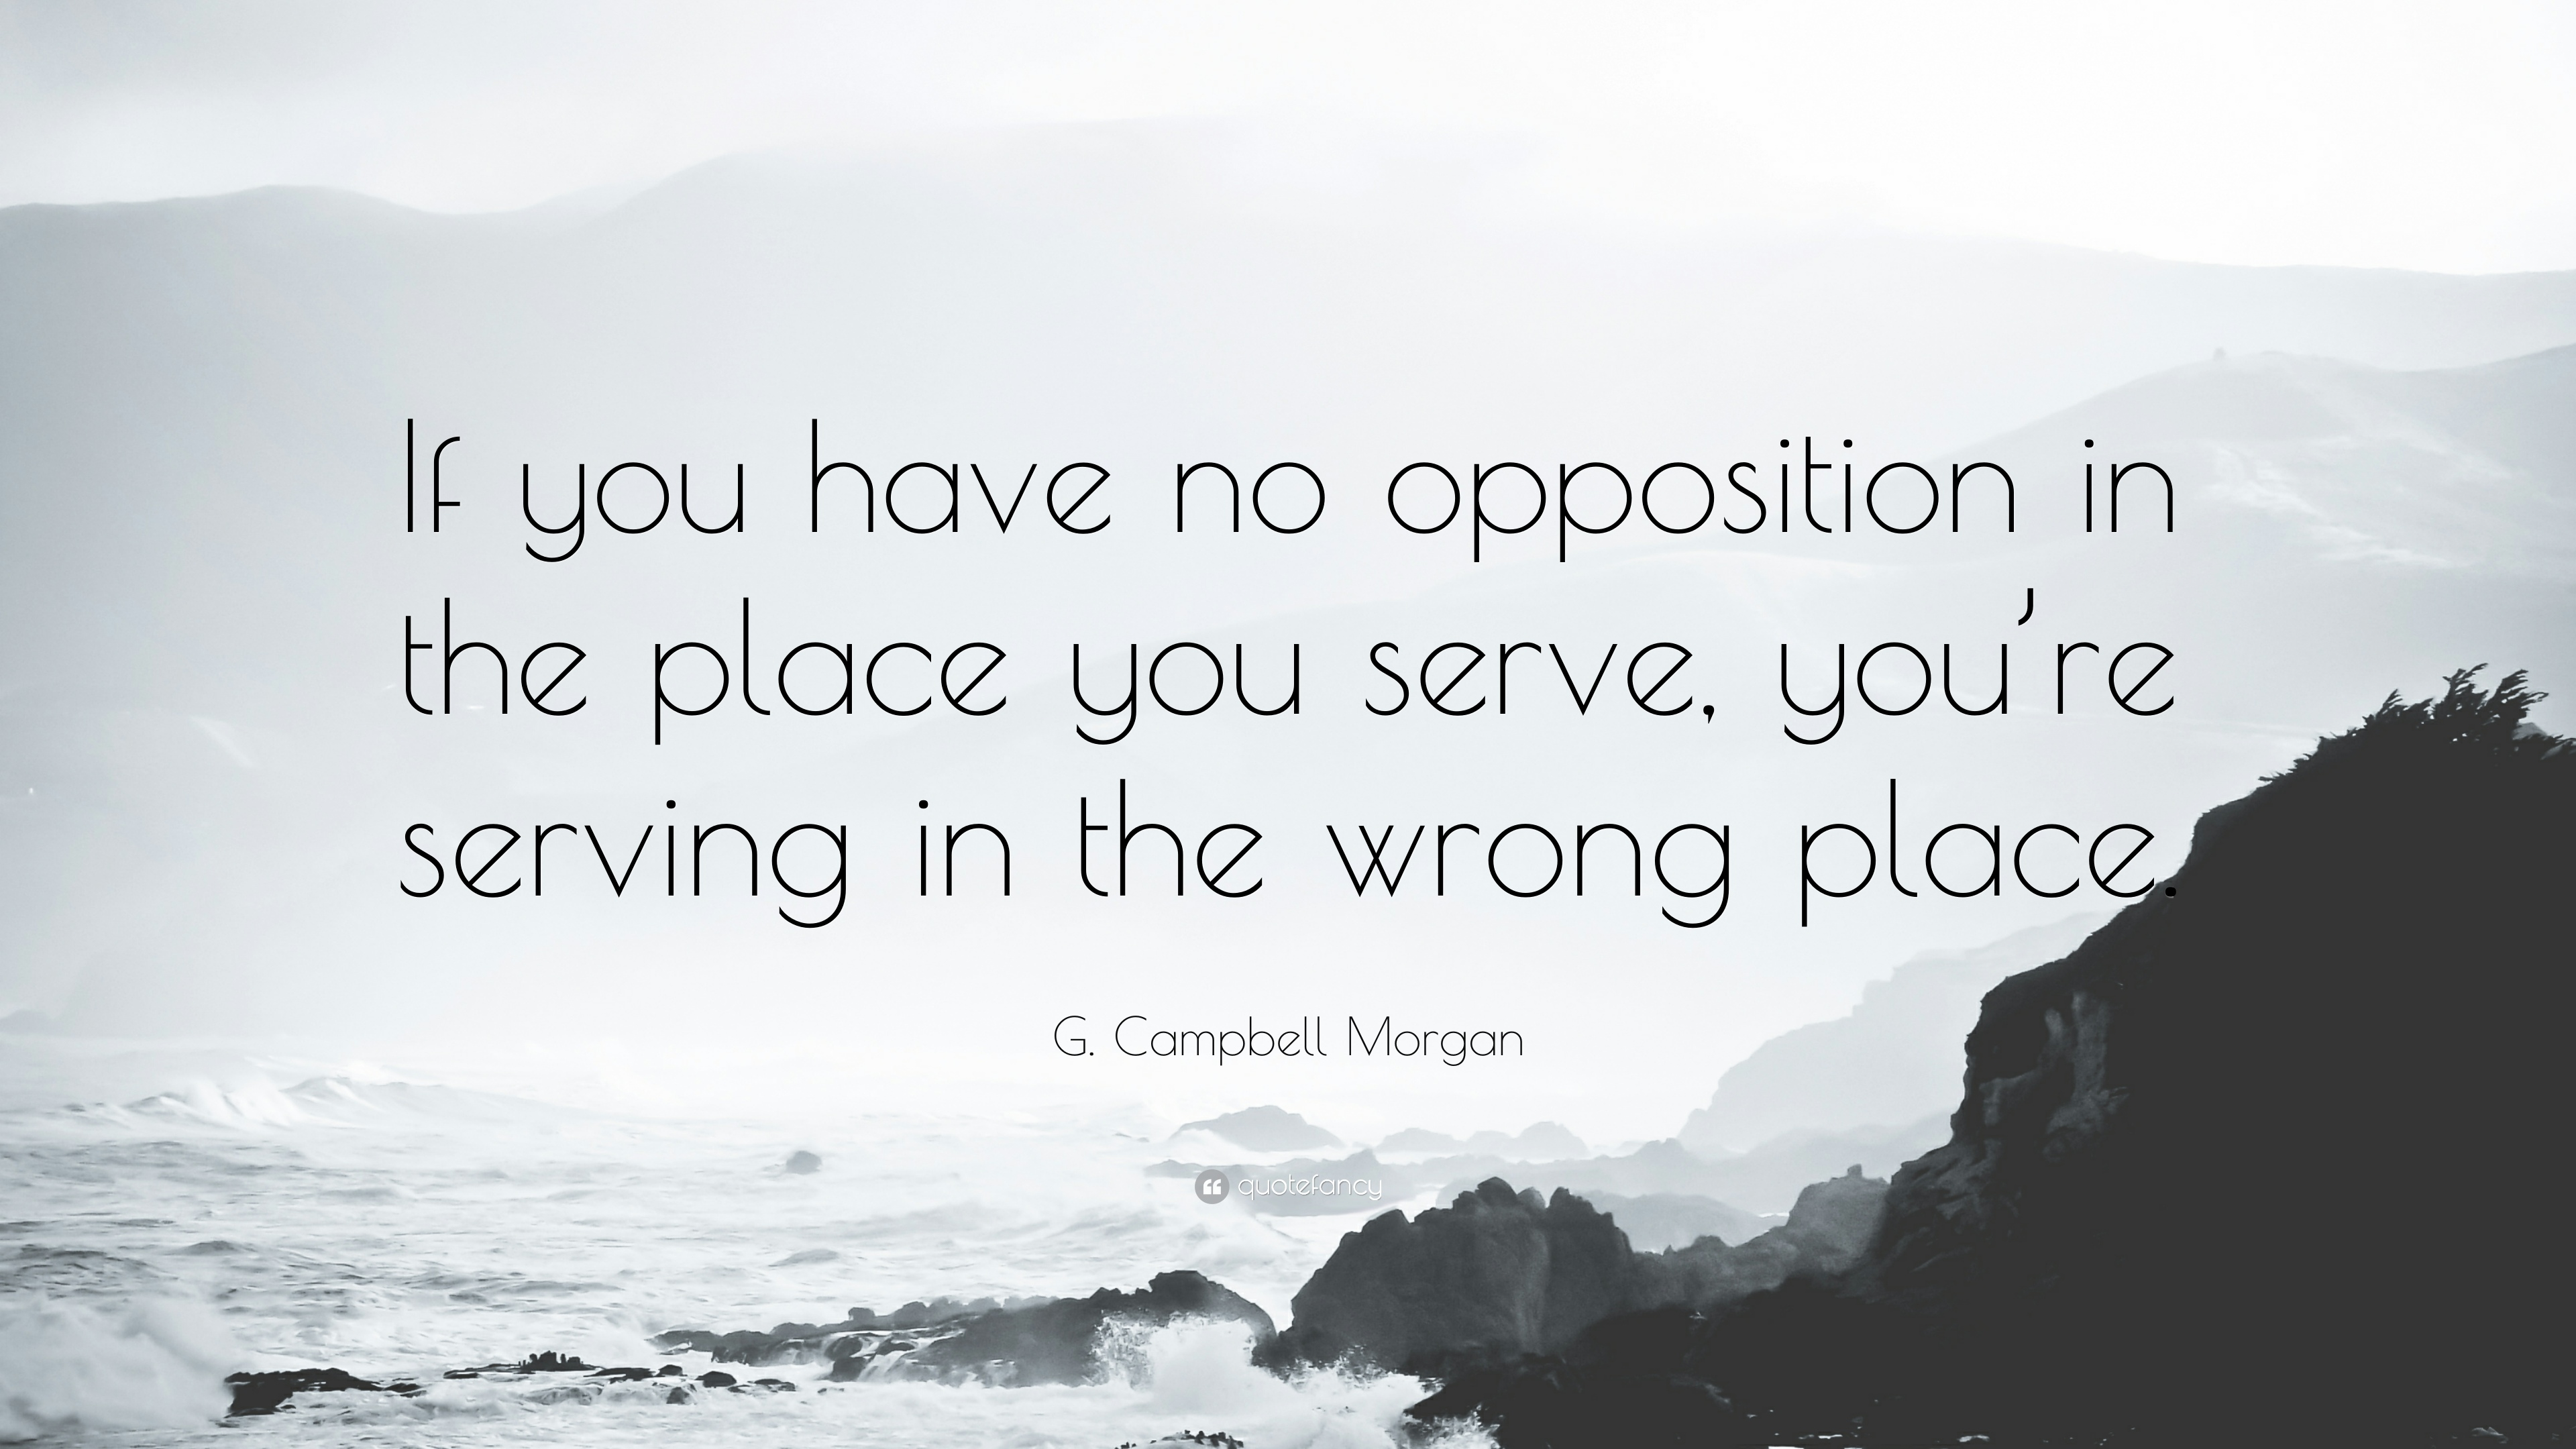 G campbell morgan quote if you have no opposition in the place you